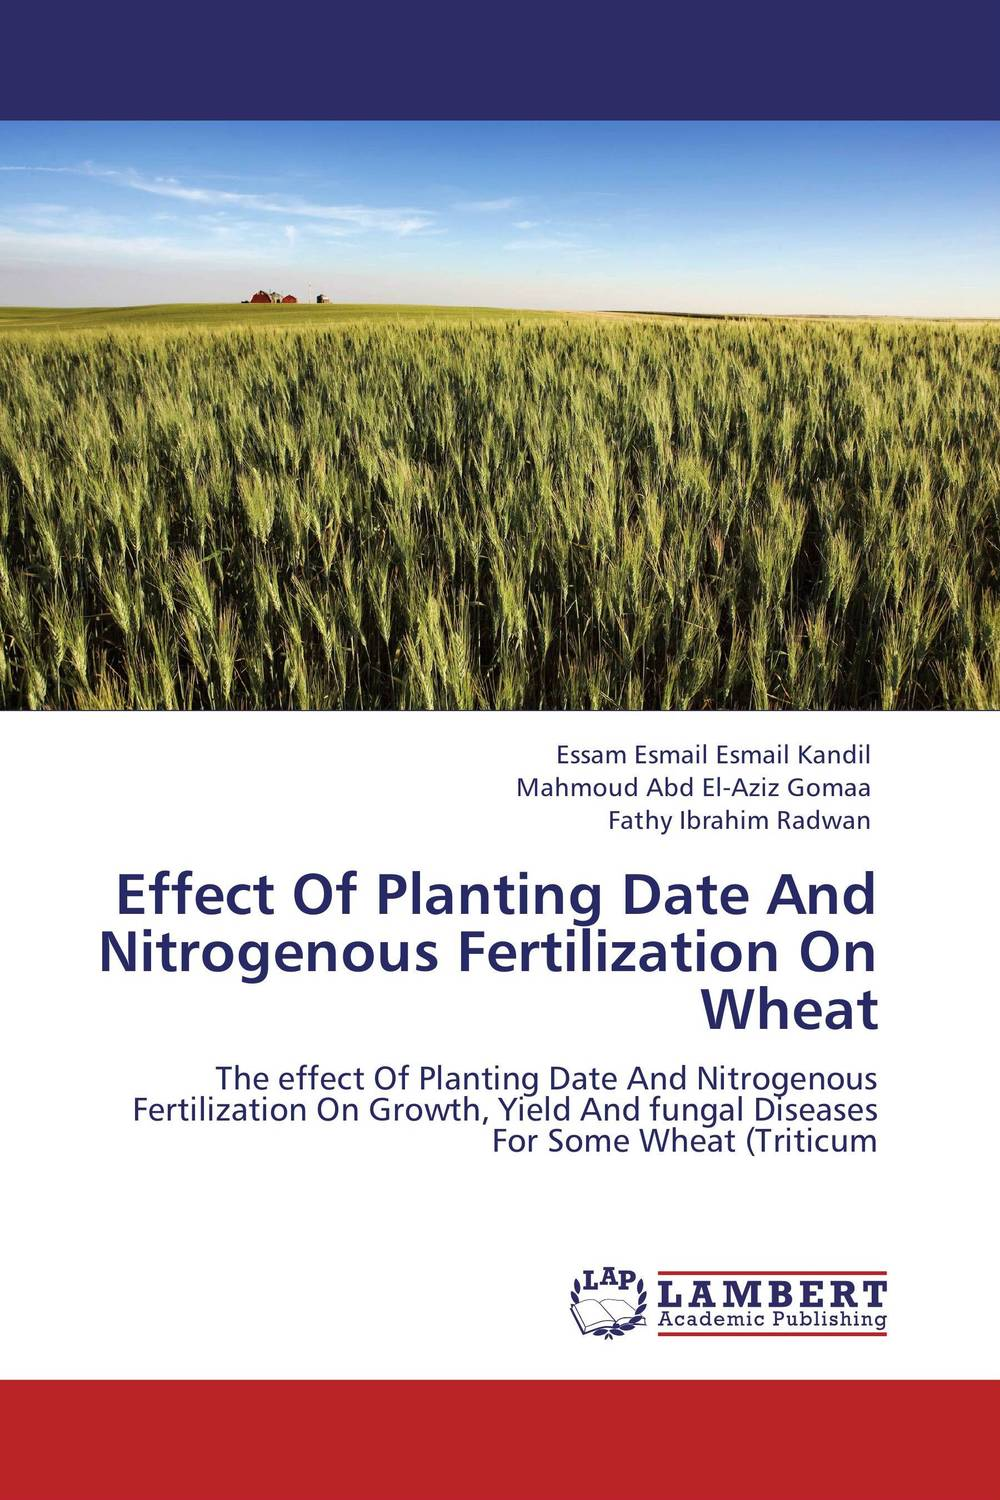 Effect Of Planting Date And Nitrogenous Fertilization On Wheat